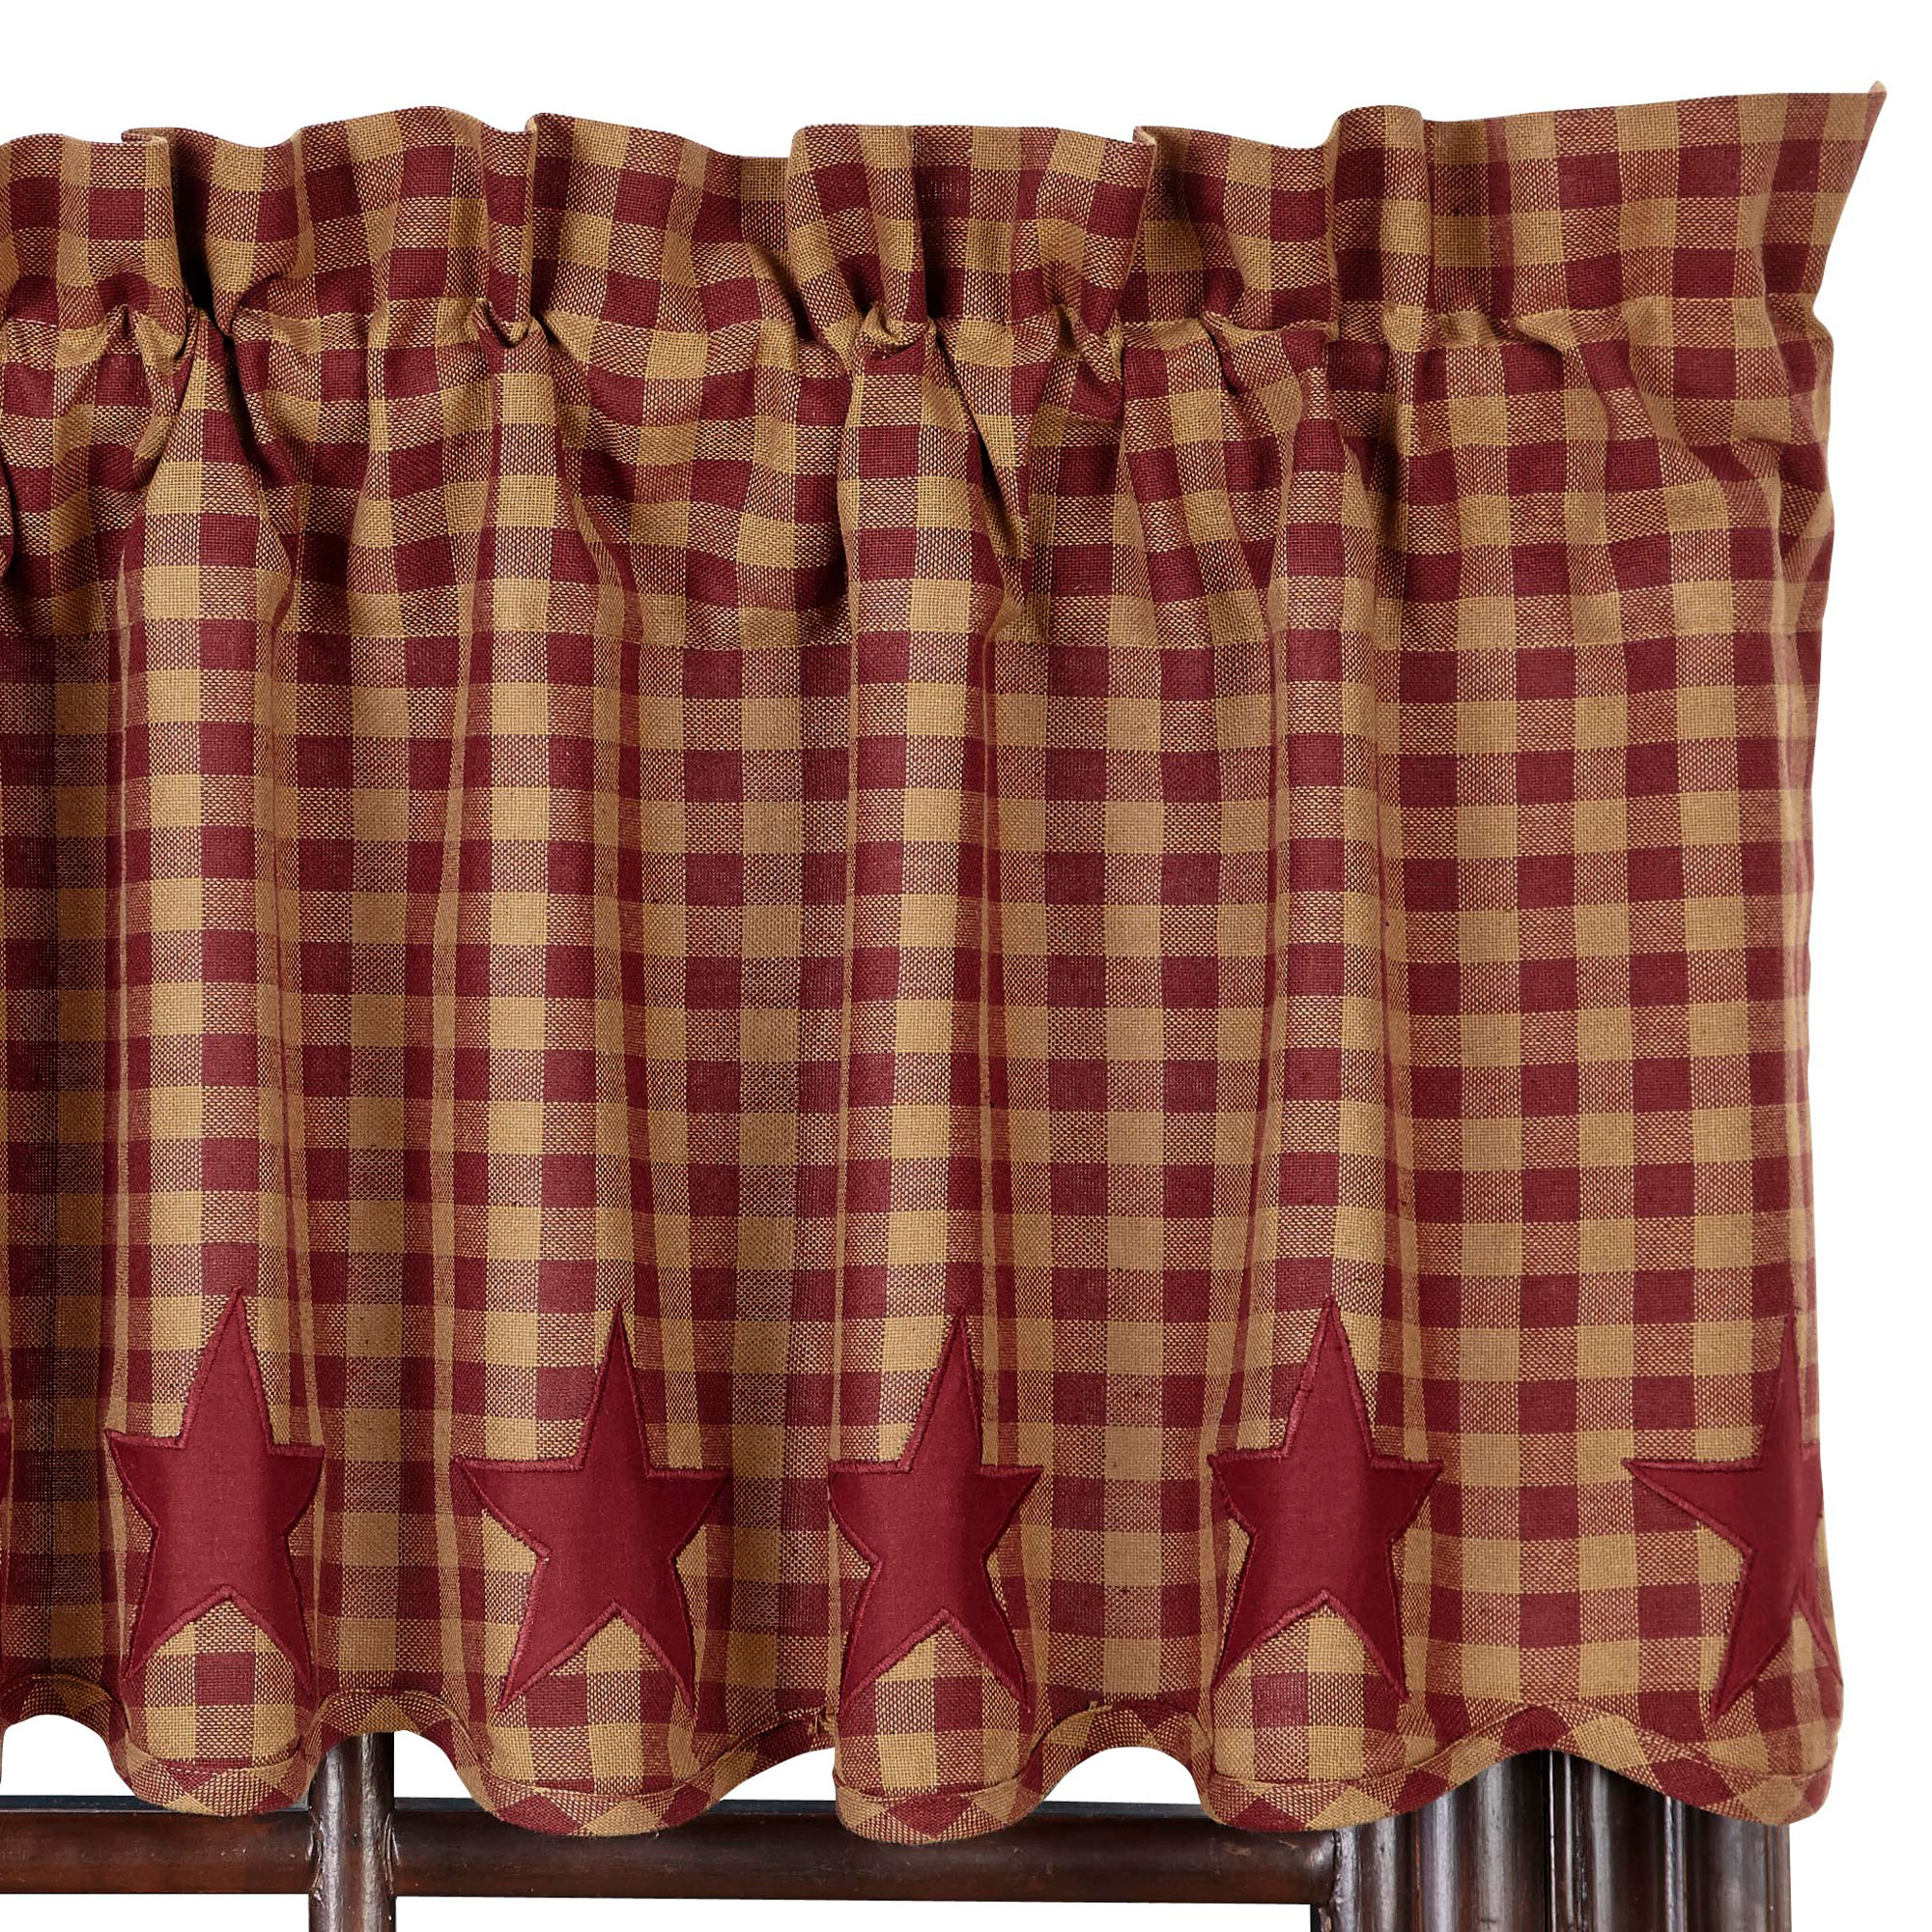 Details About Star And Check Scalloped Country Curtain Valance Navy Black Or Burgundy